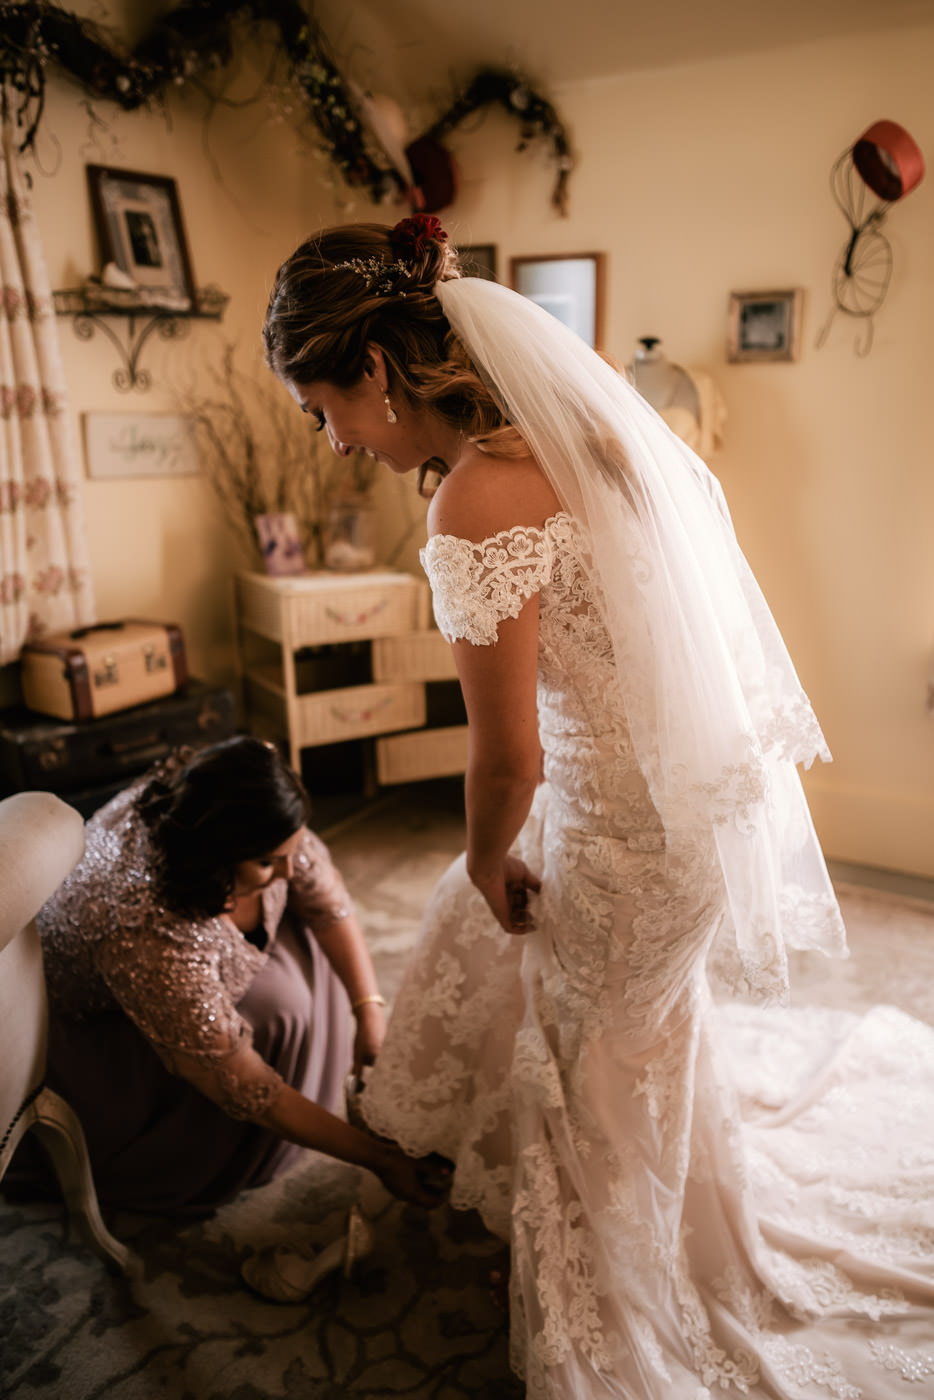 Bride's mother helps her with her heels.